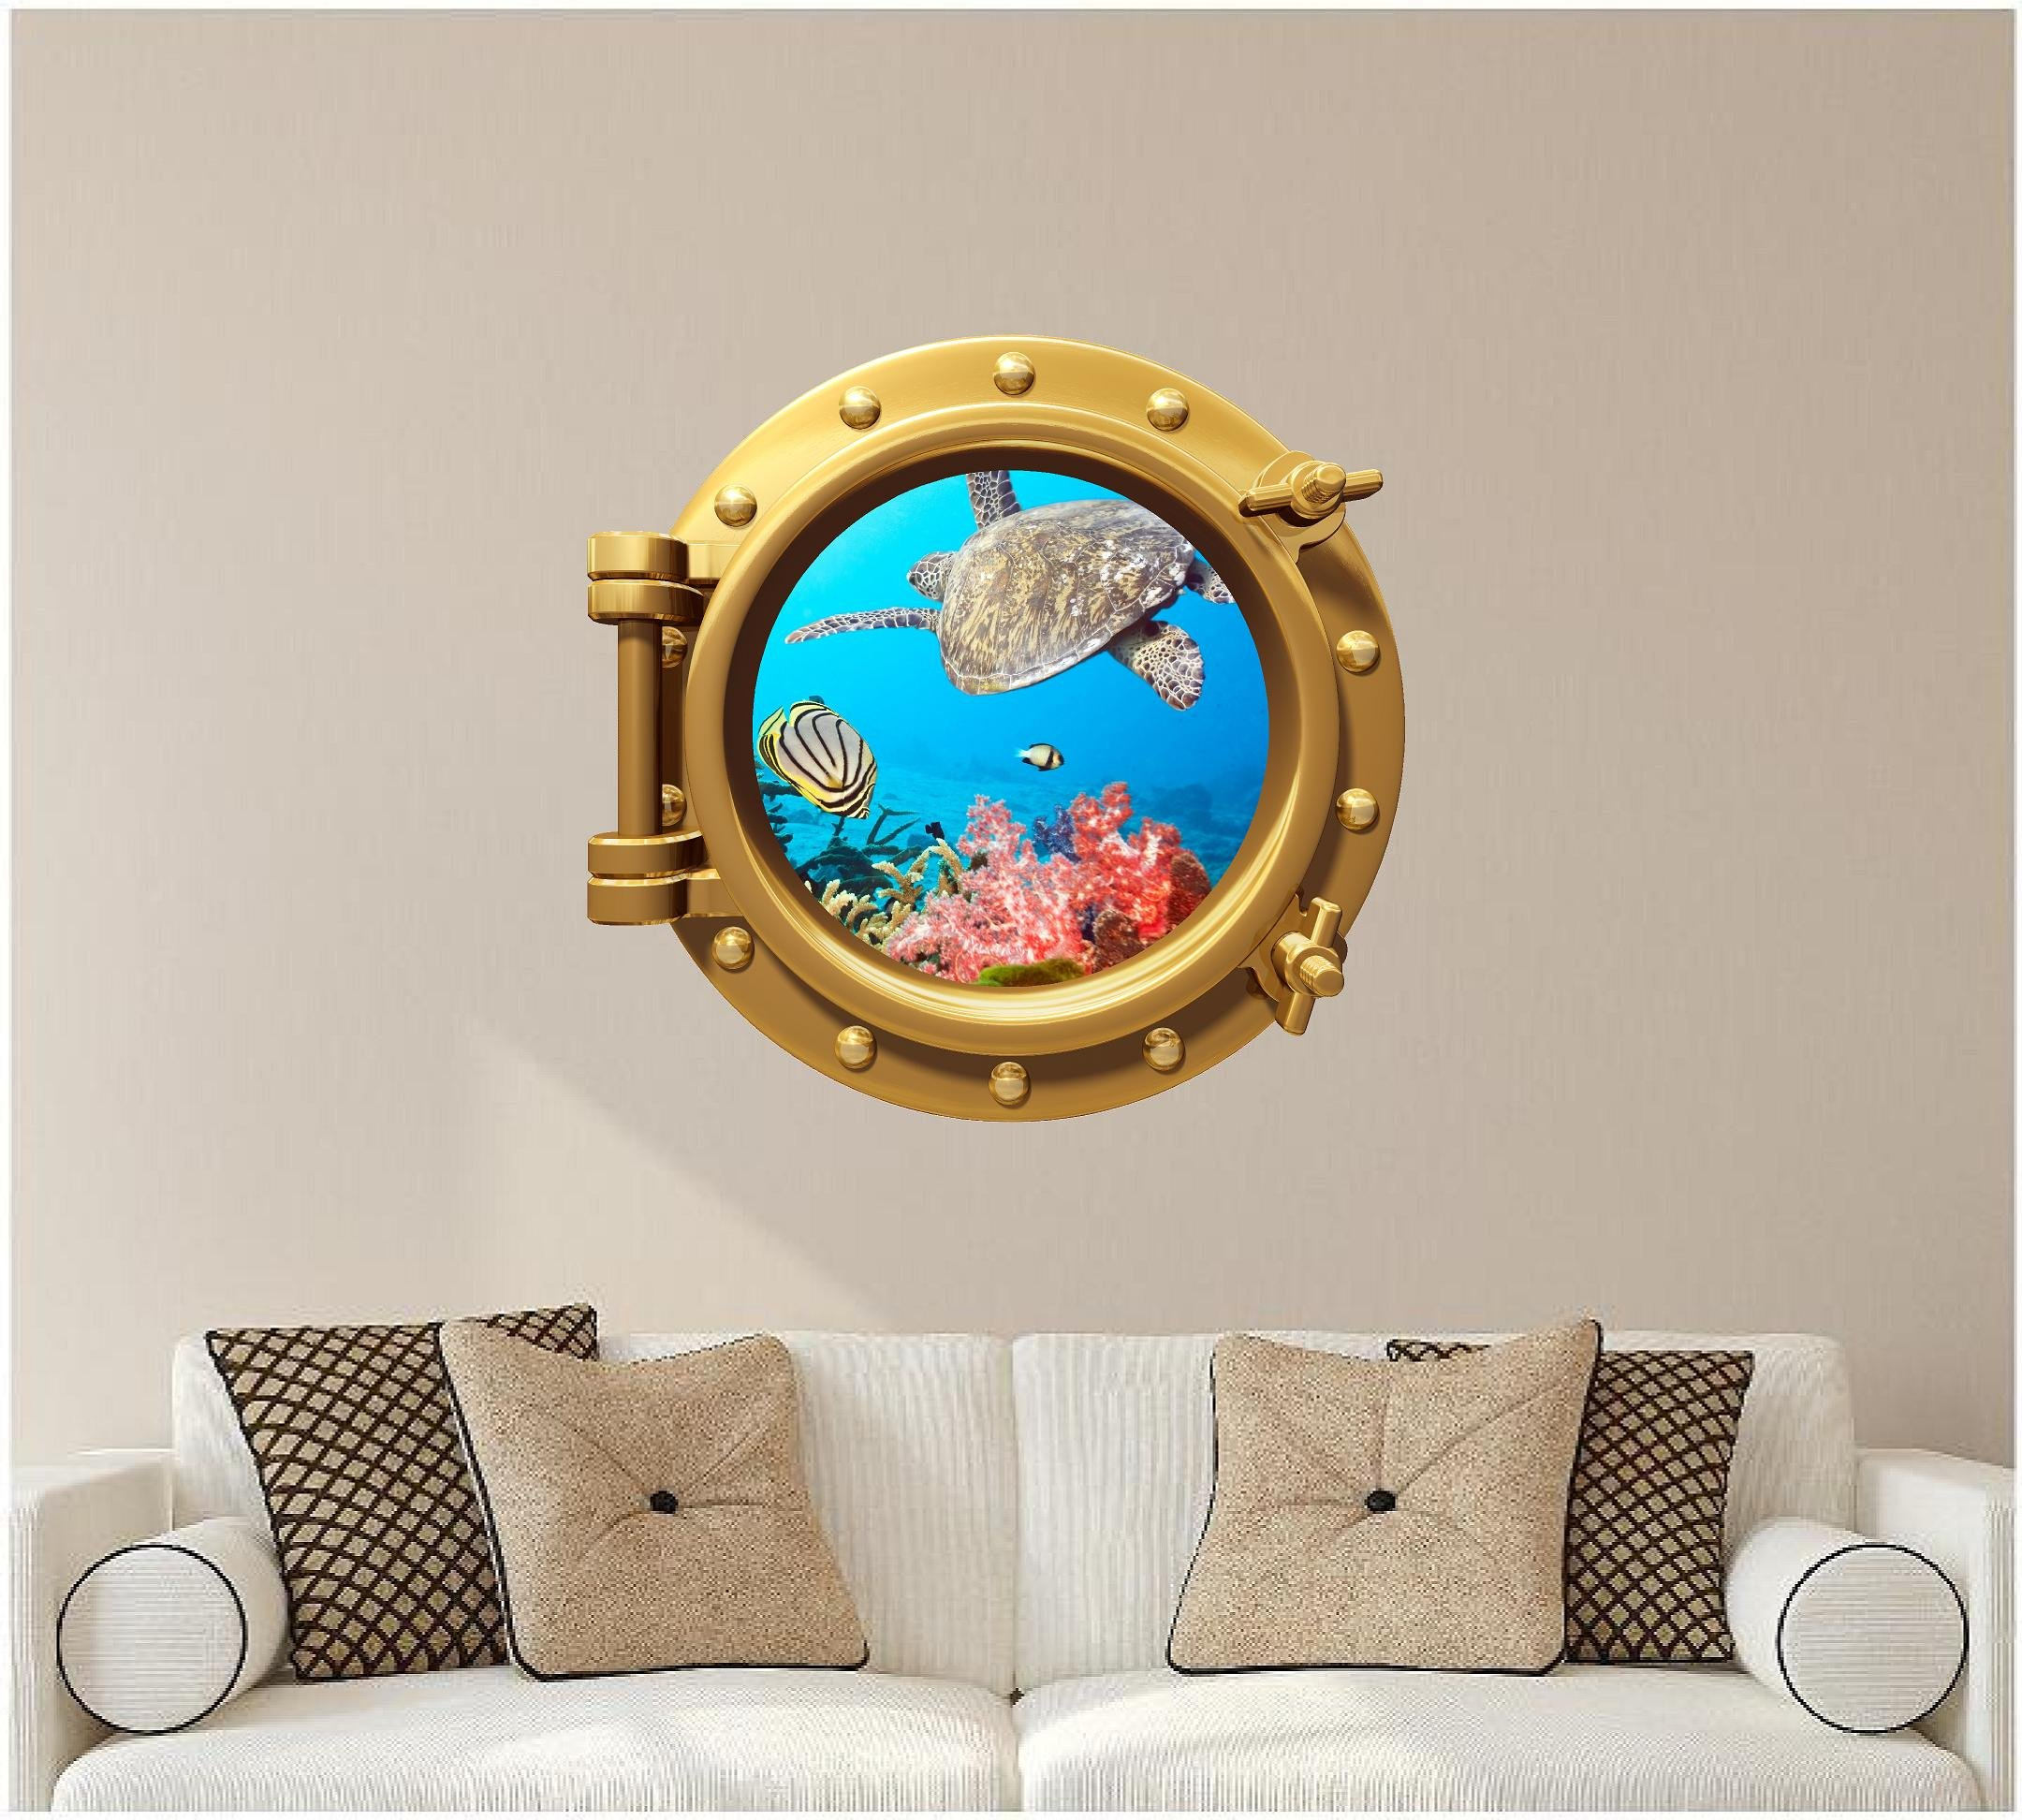 24'' Port Scape WALL DECAL! TROPICAL REEF LIFE #1 BRONZE Porthole 3D Instant Window Sticker Home Kids Game Room Mural Art Decor